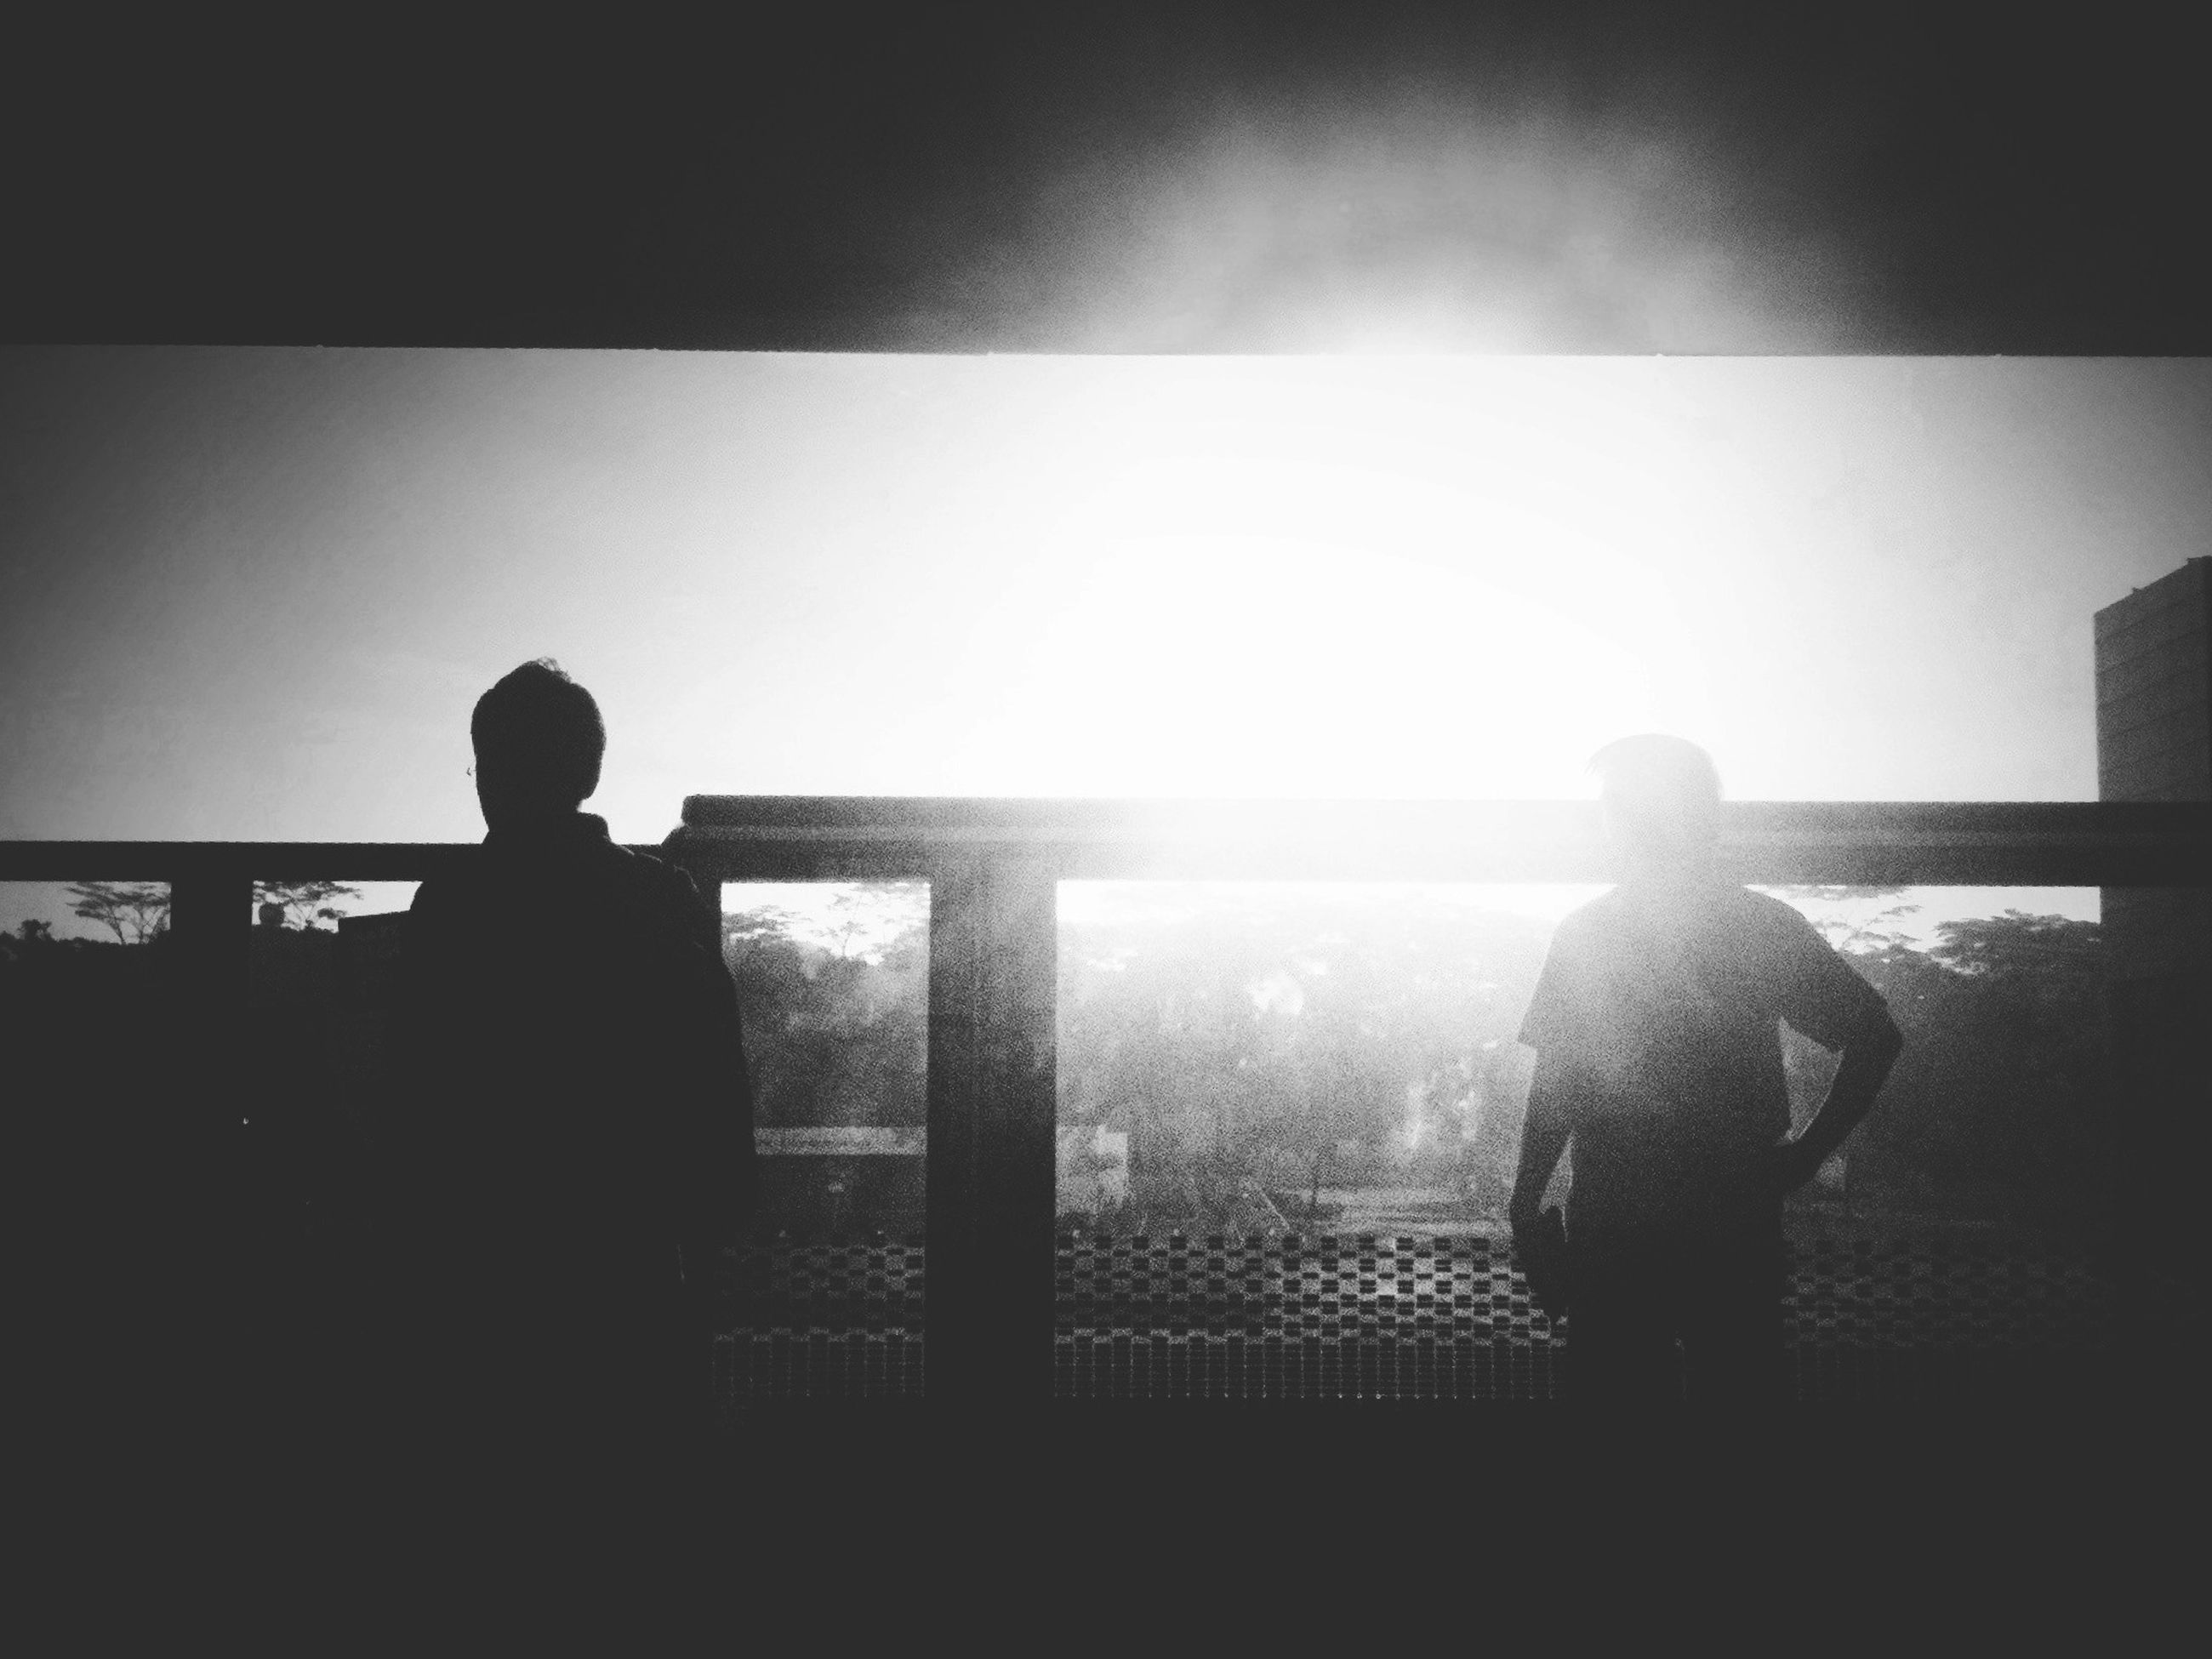 silhouette, indoors, rear view, lifestyles, standing, full length, leisure activity, men, togetherness, water, sea, sitting, person, side view, outline, sunlight, railing